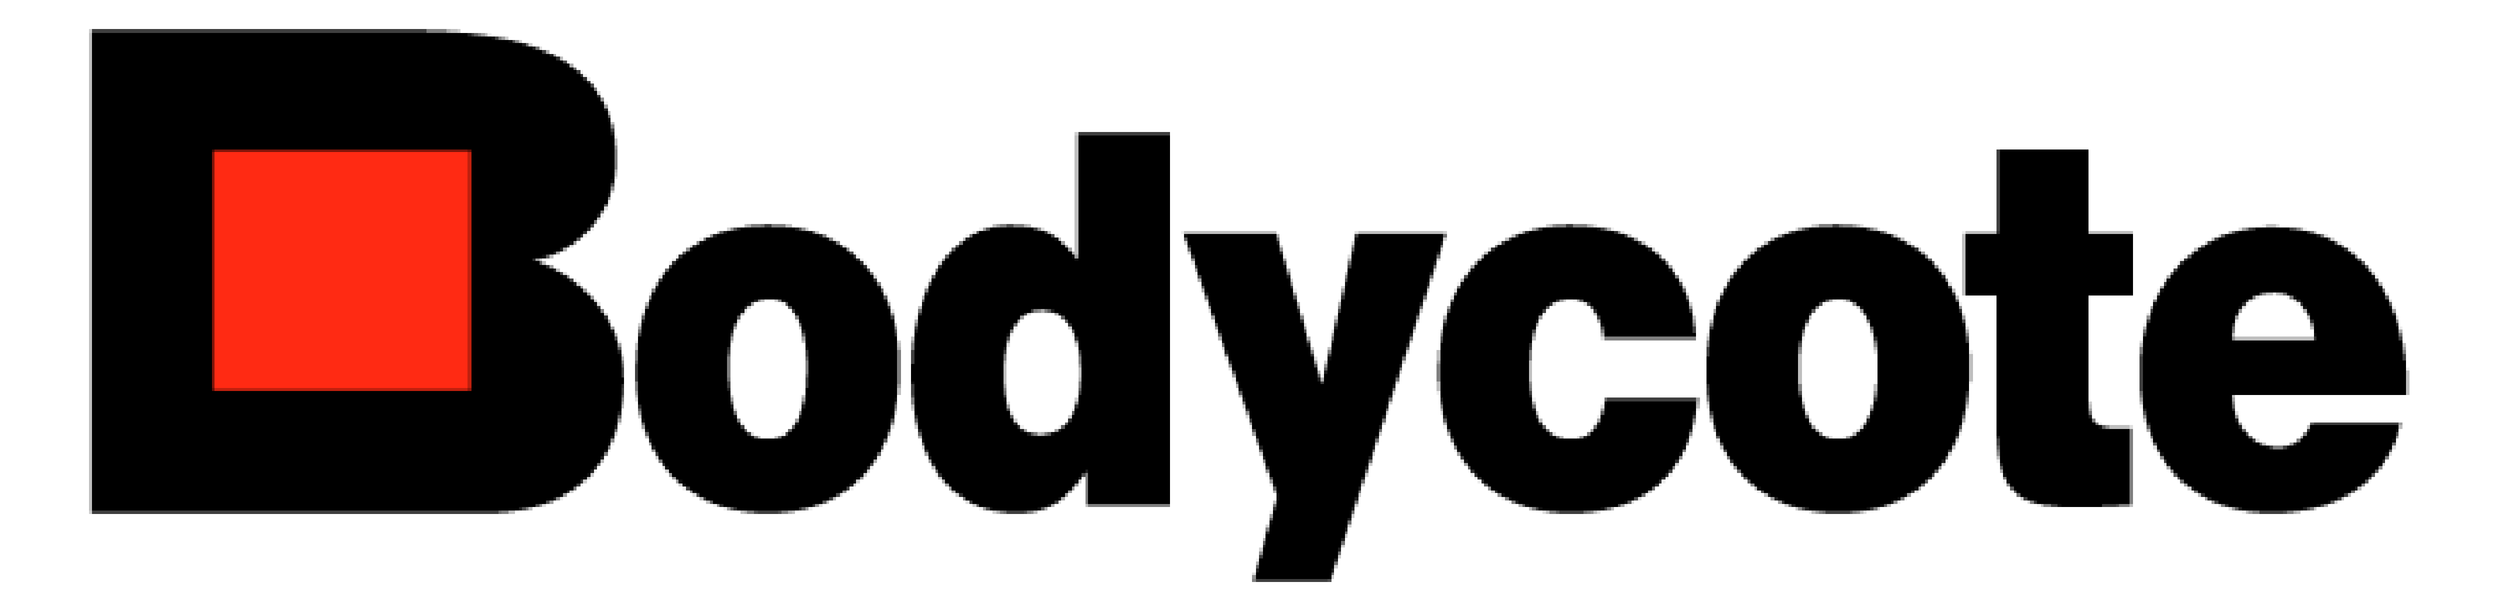 Bodycote.png